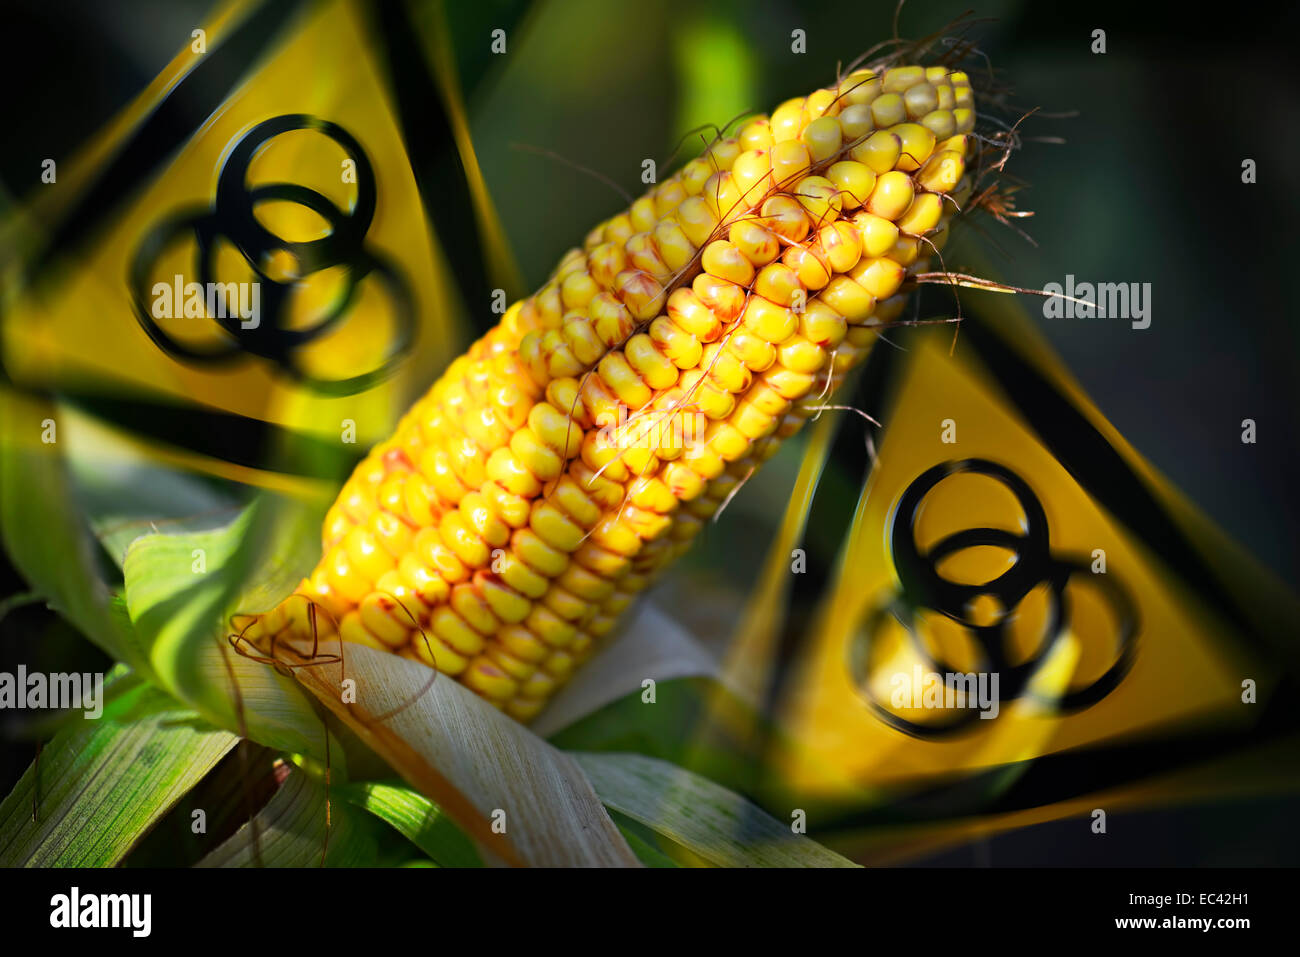 Corncobs and biohazard signs, genetically modified corn - Stock Image